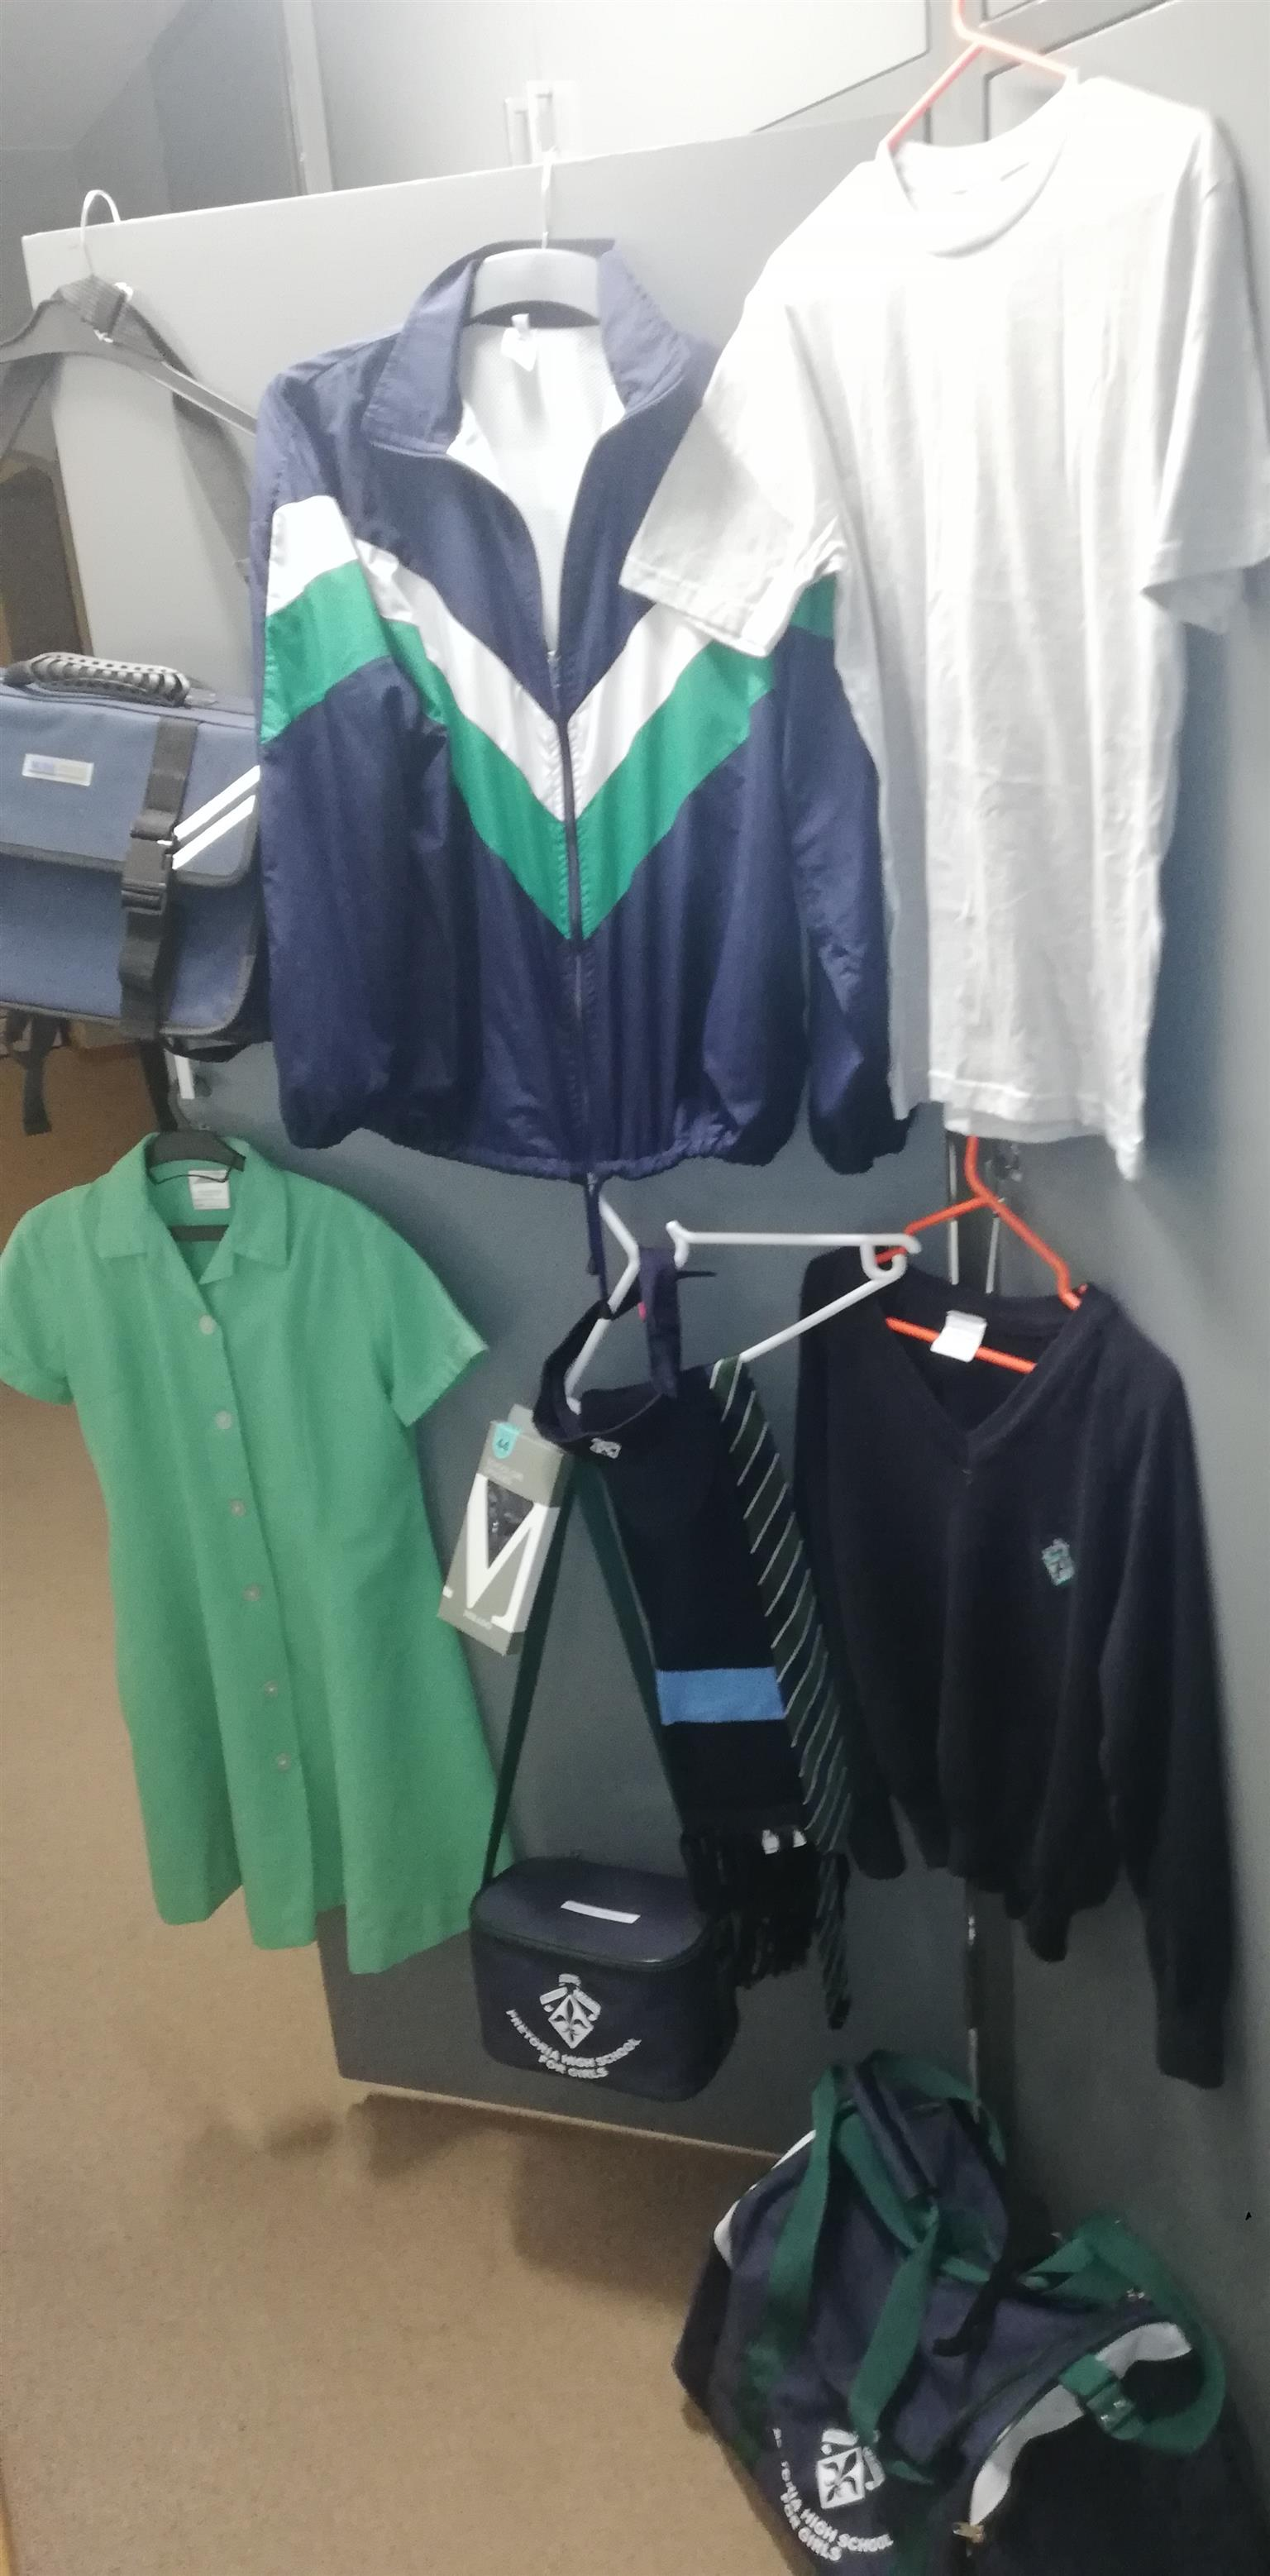 Phsg school uniform and gear all for